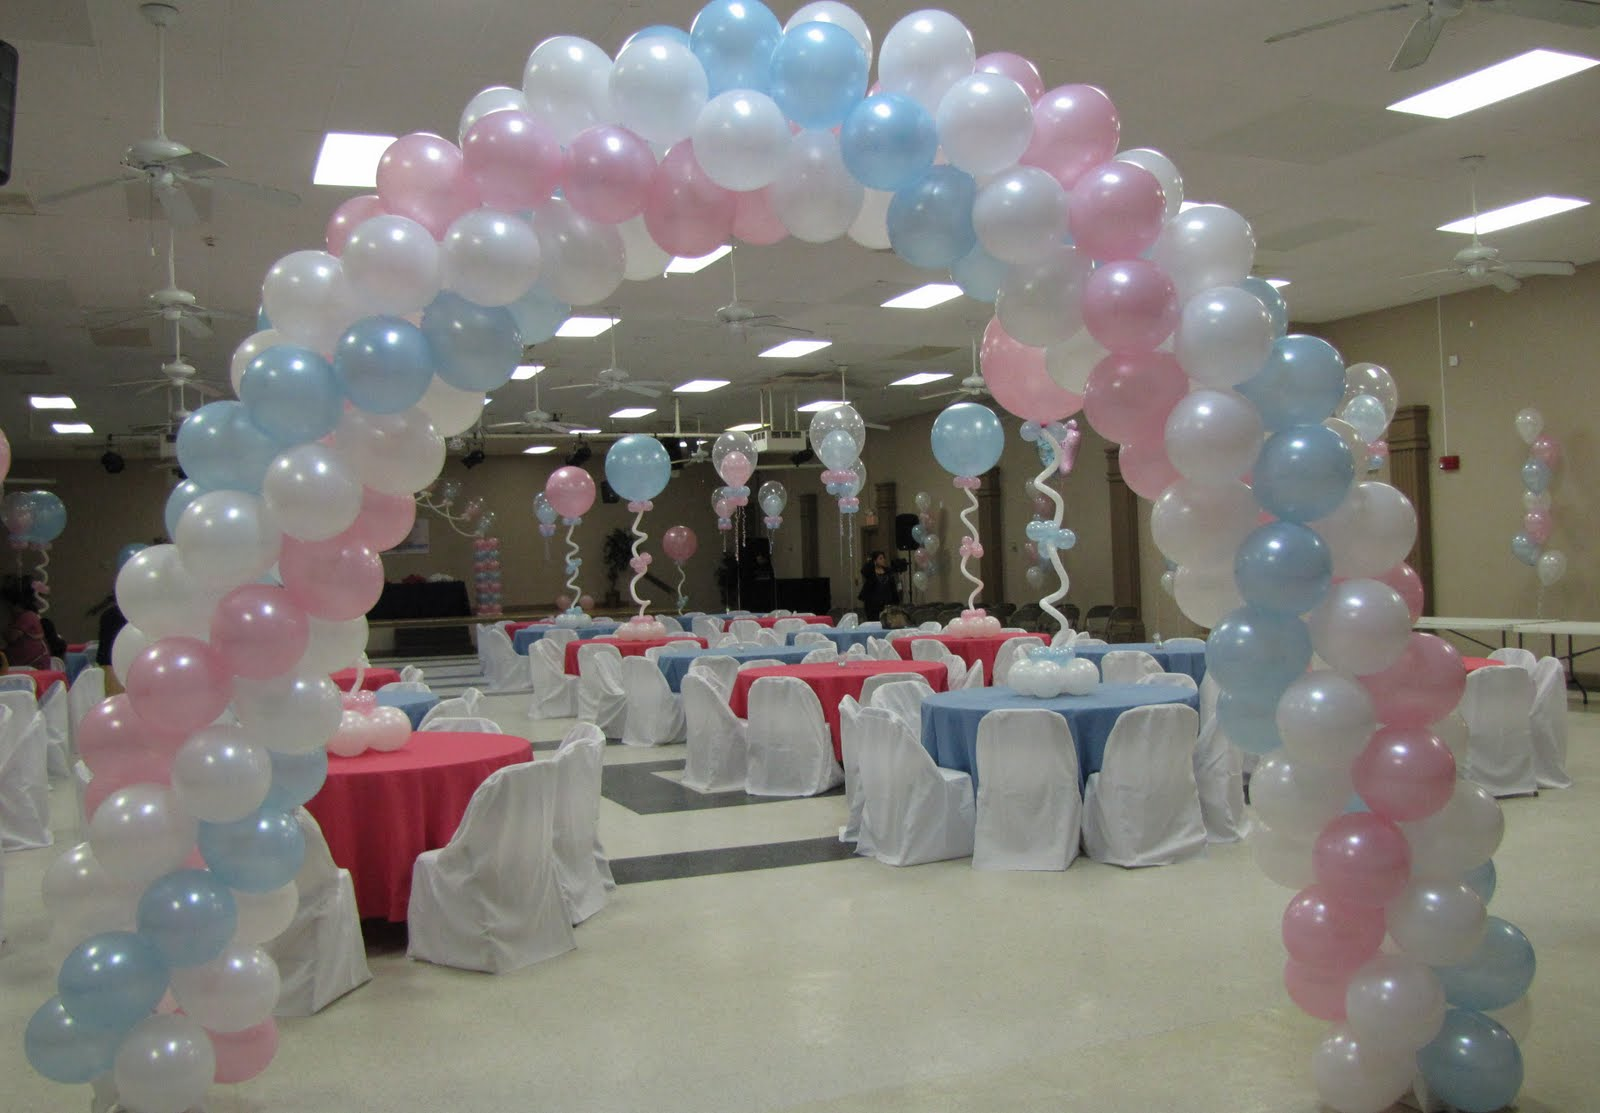 Balloons decorations for baby shower party favors ideas for Baby shower party decoration ideas